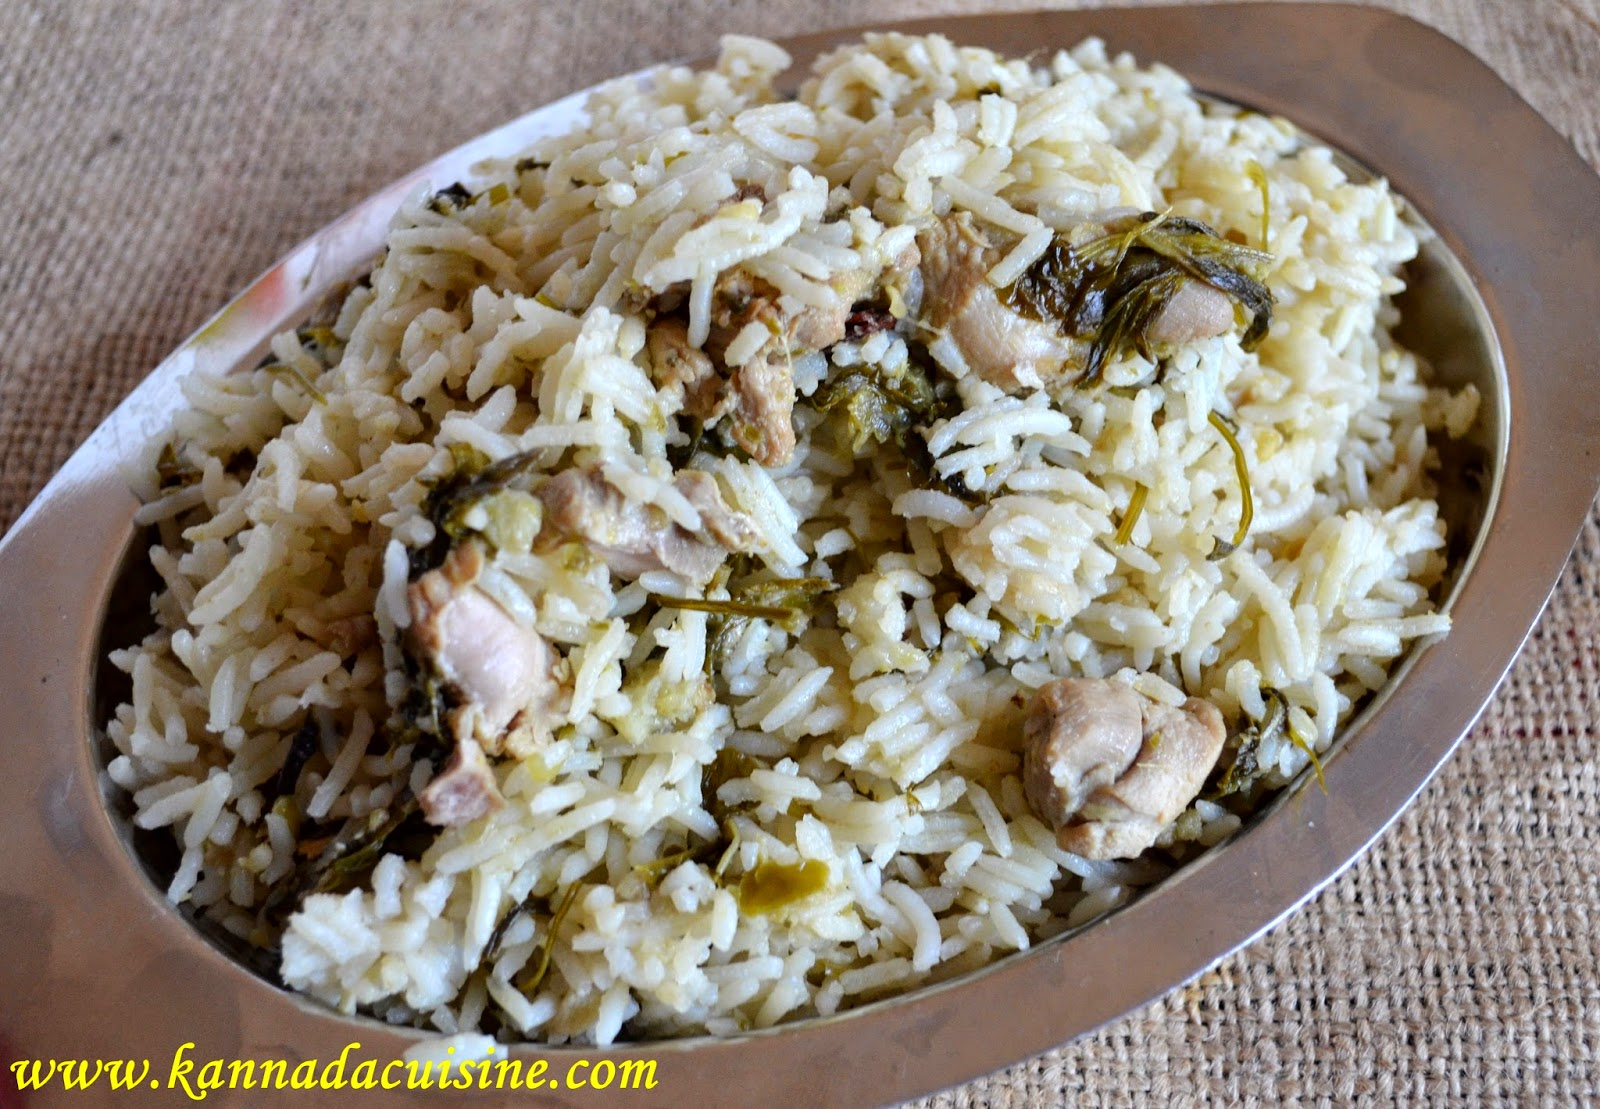 Kannada cuisine chicken biriyani kannada style so here is ammas herbal chicken biriyani yes it is off white in color again keeping with the simplicity of kannadigas forumfinder Gallery